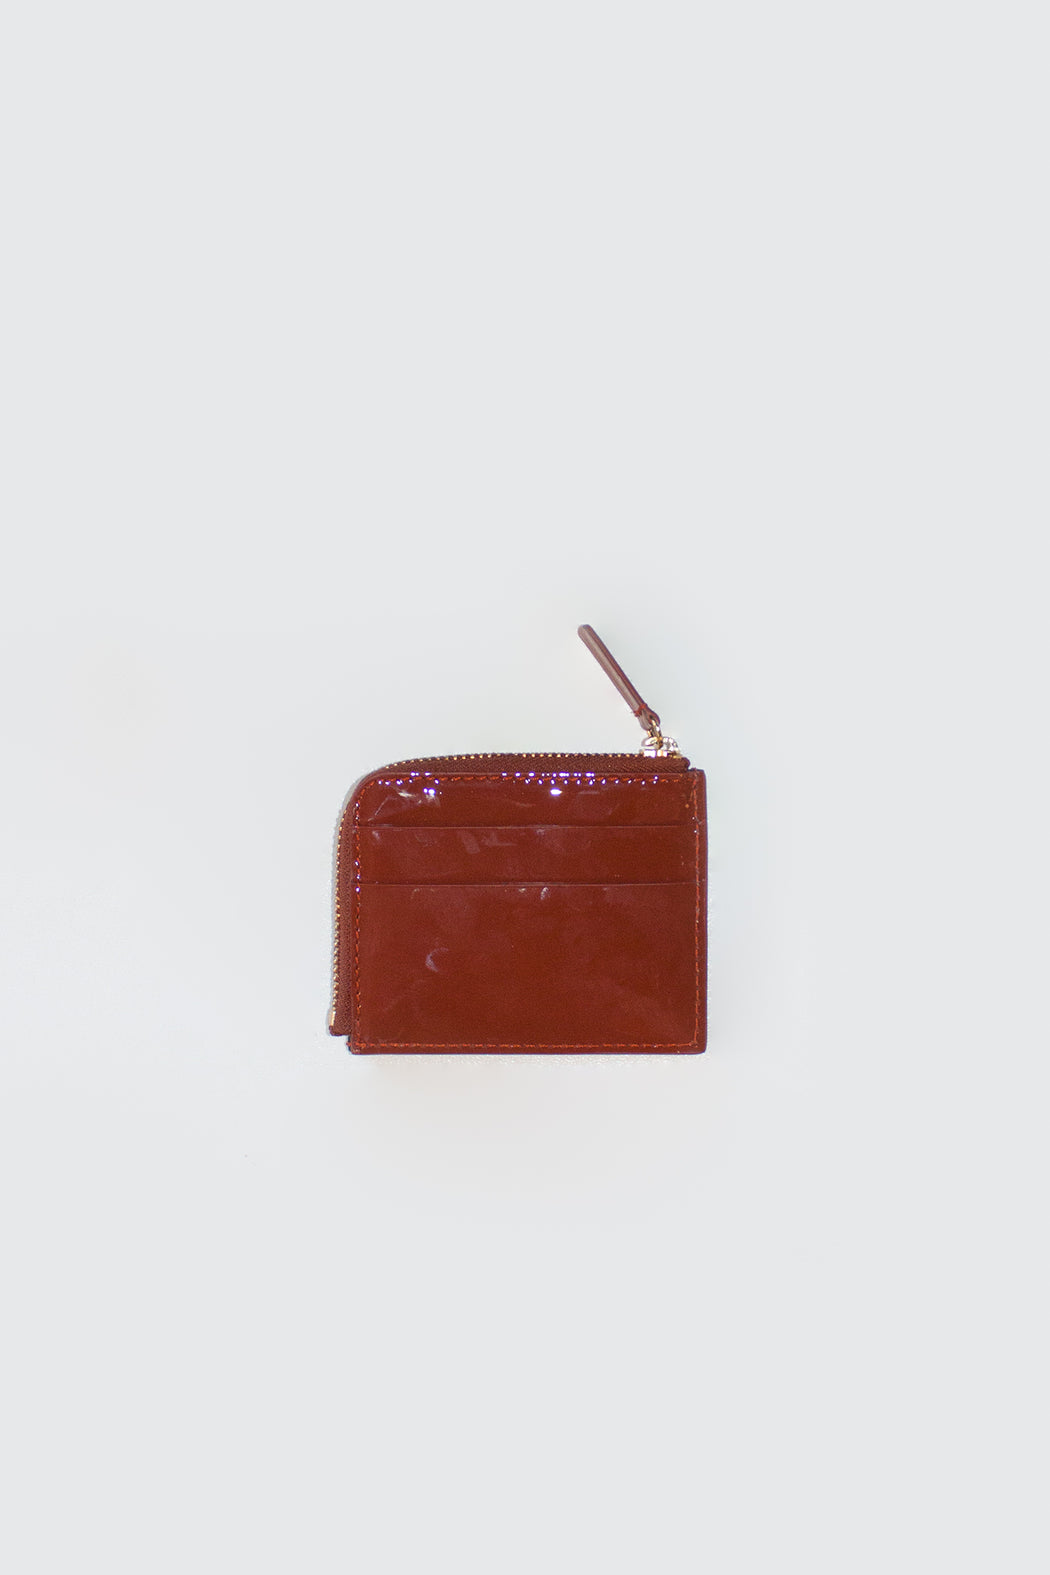 The Stowe Leather Goods | Card Wallet Tomato Patent Leather